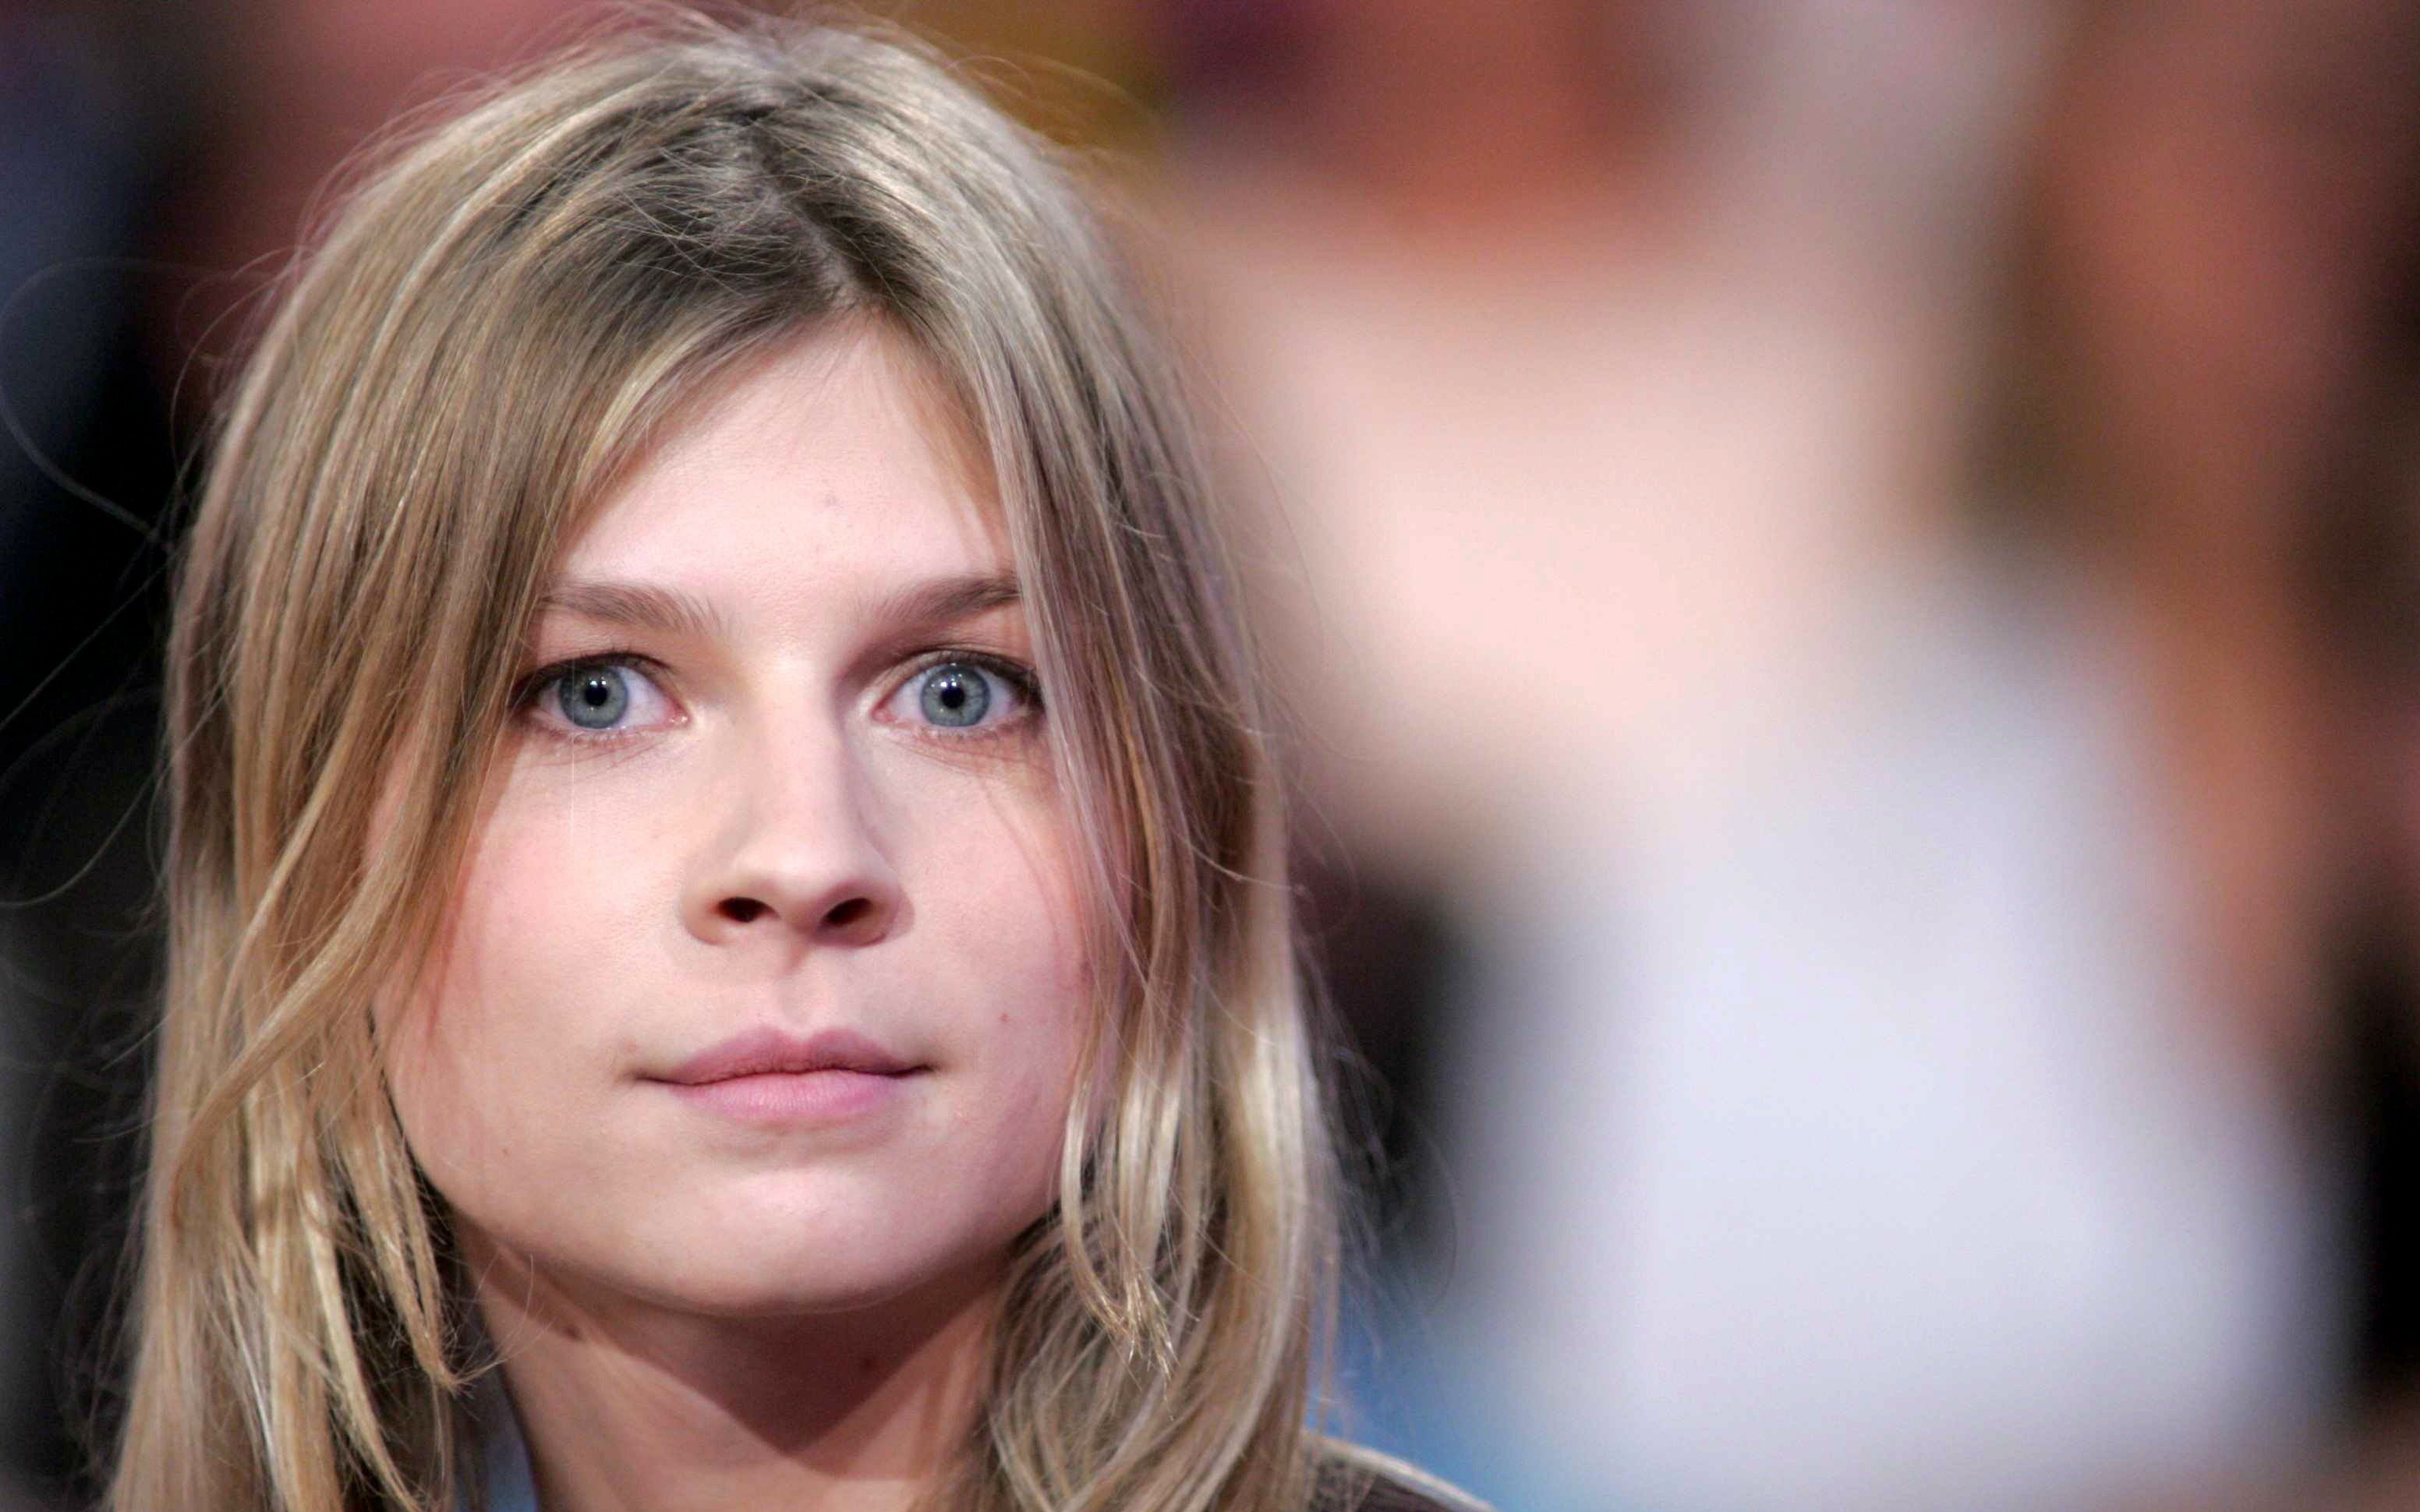 2880x1800 - Clemence Poesy Wallpapers 12